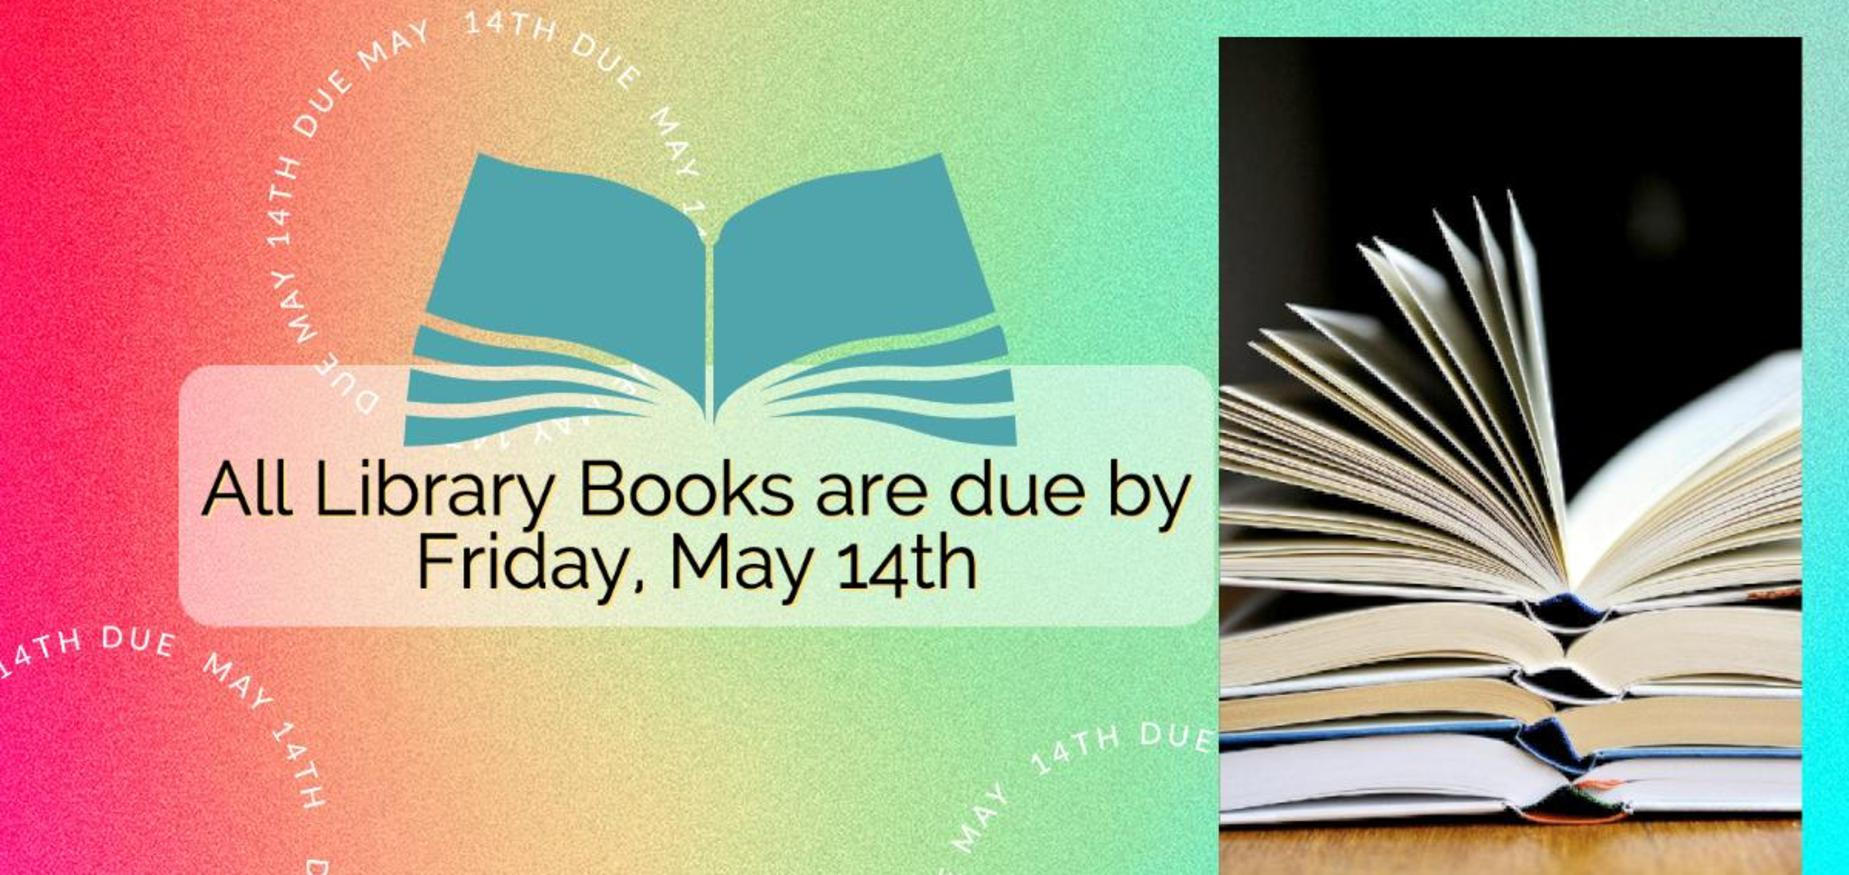 library books due may 14th